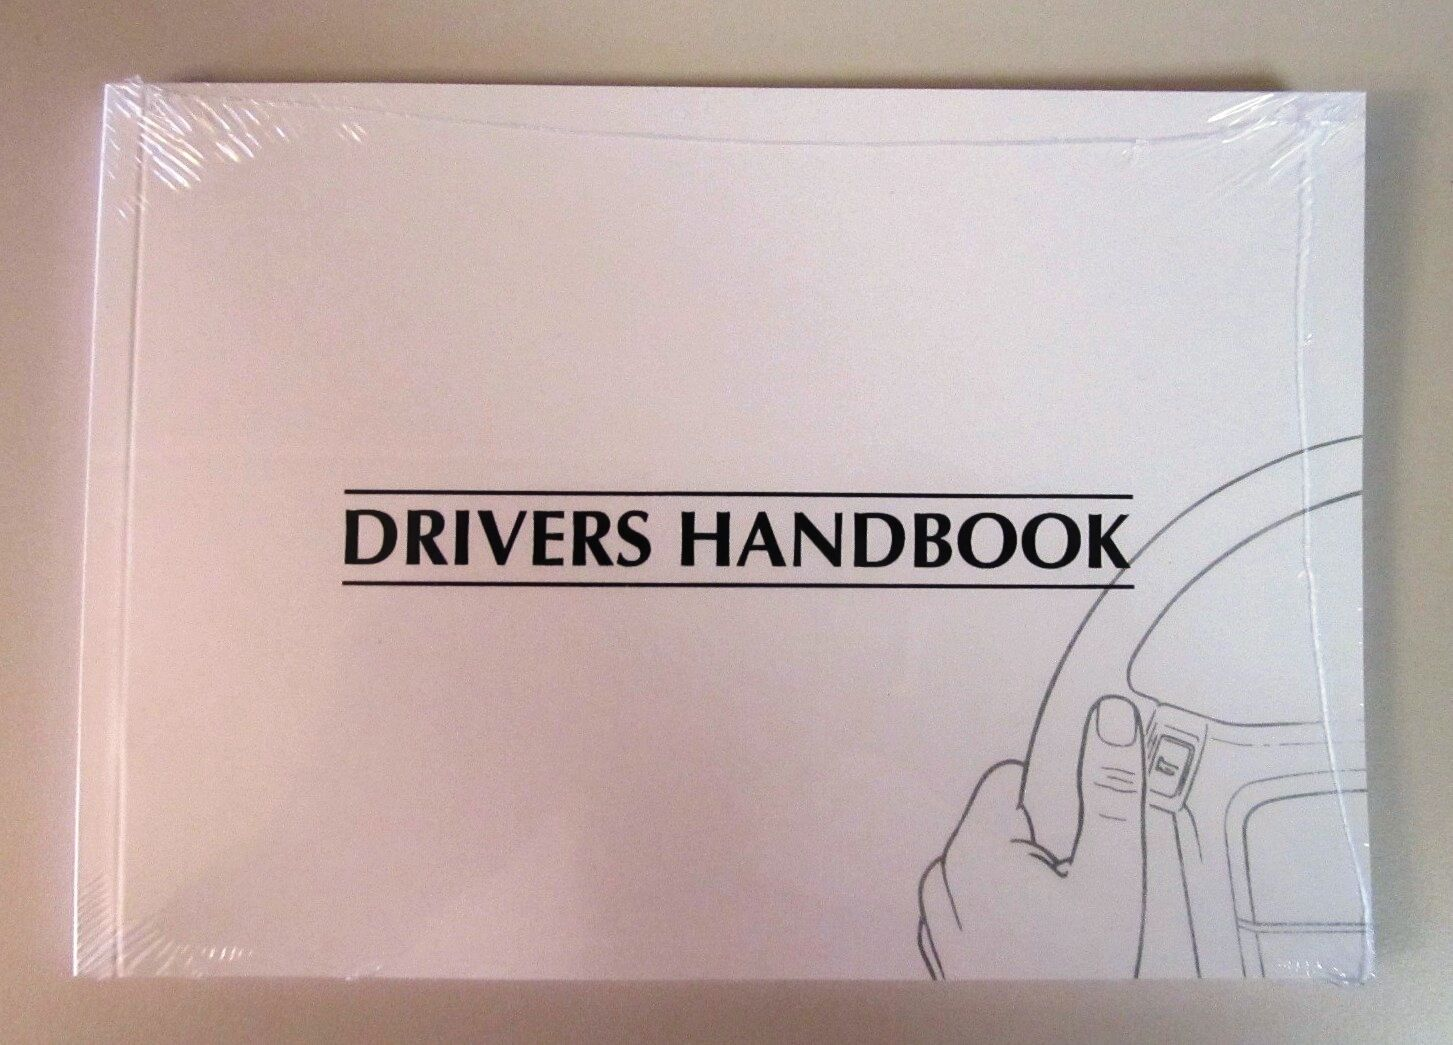 1994 1995 1996 Jaguar Xjs Owners Manual Drivers Handbook New Coupe Xj6 Fuse Box 1 Of See More